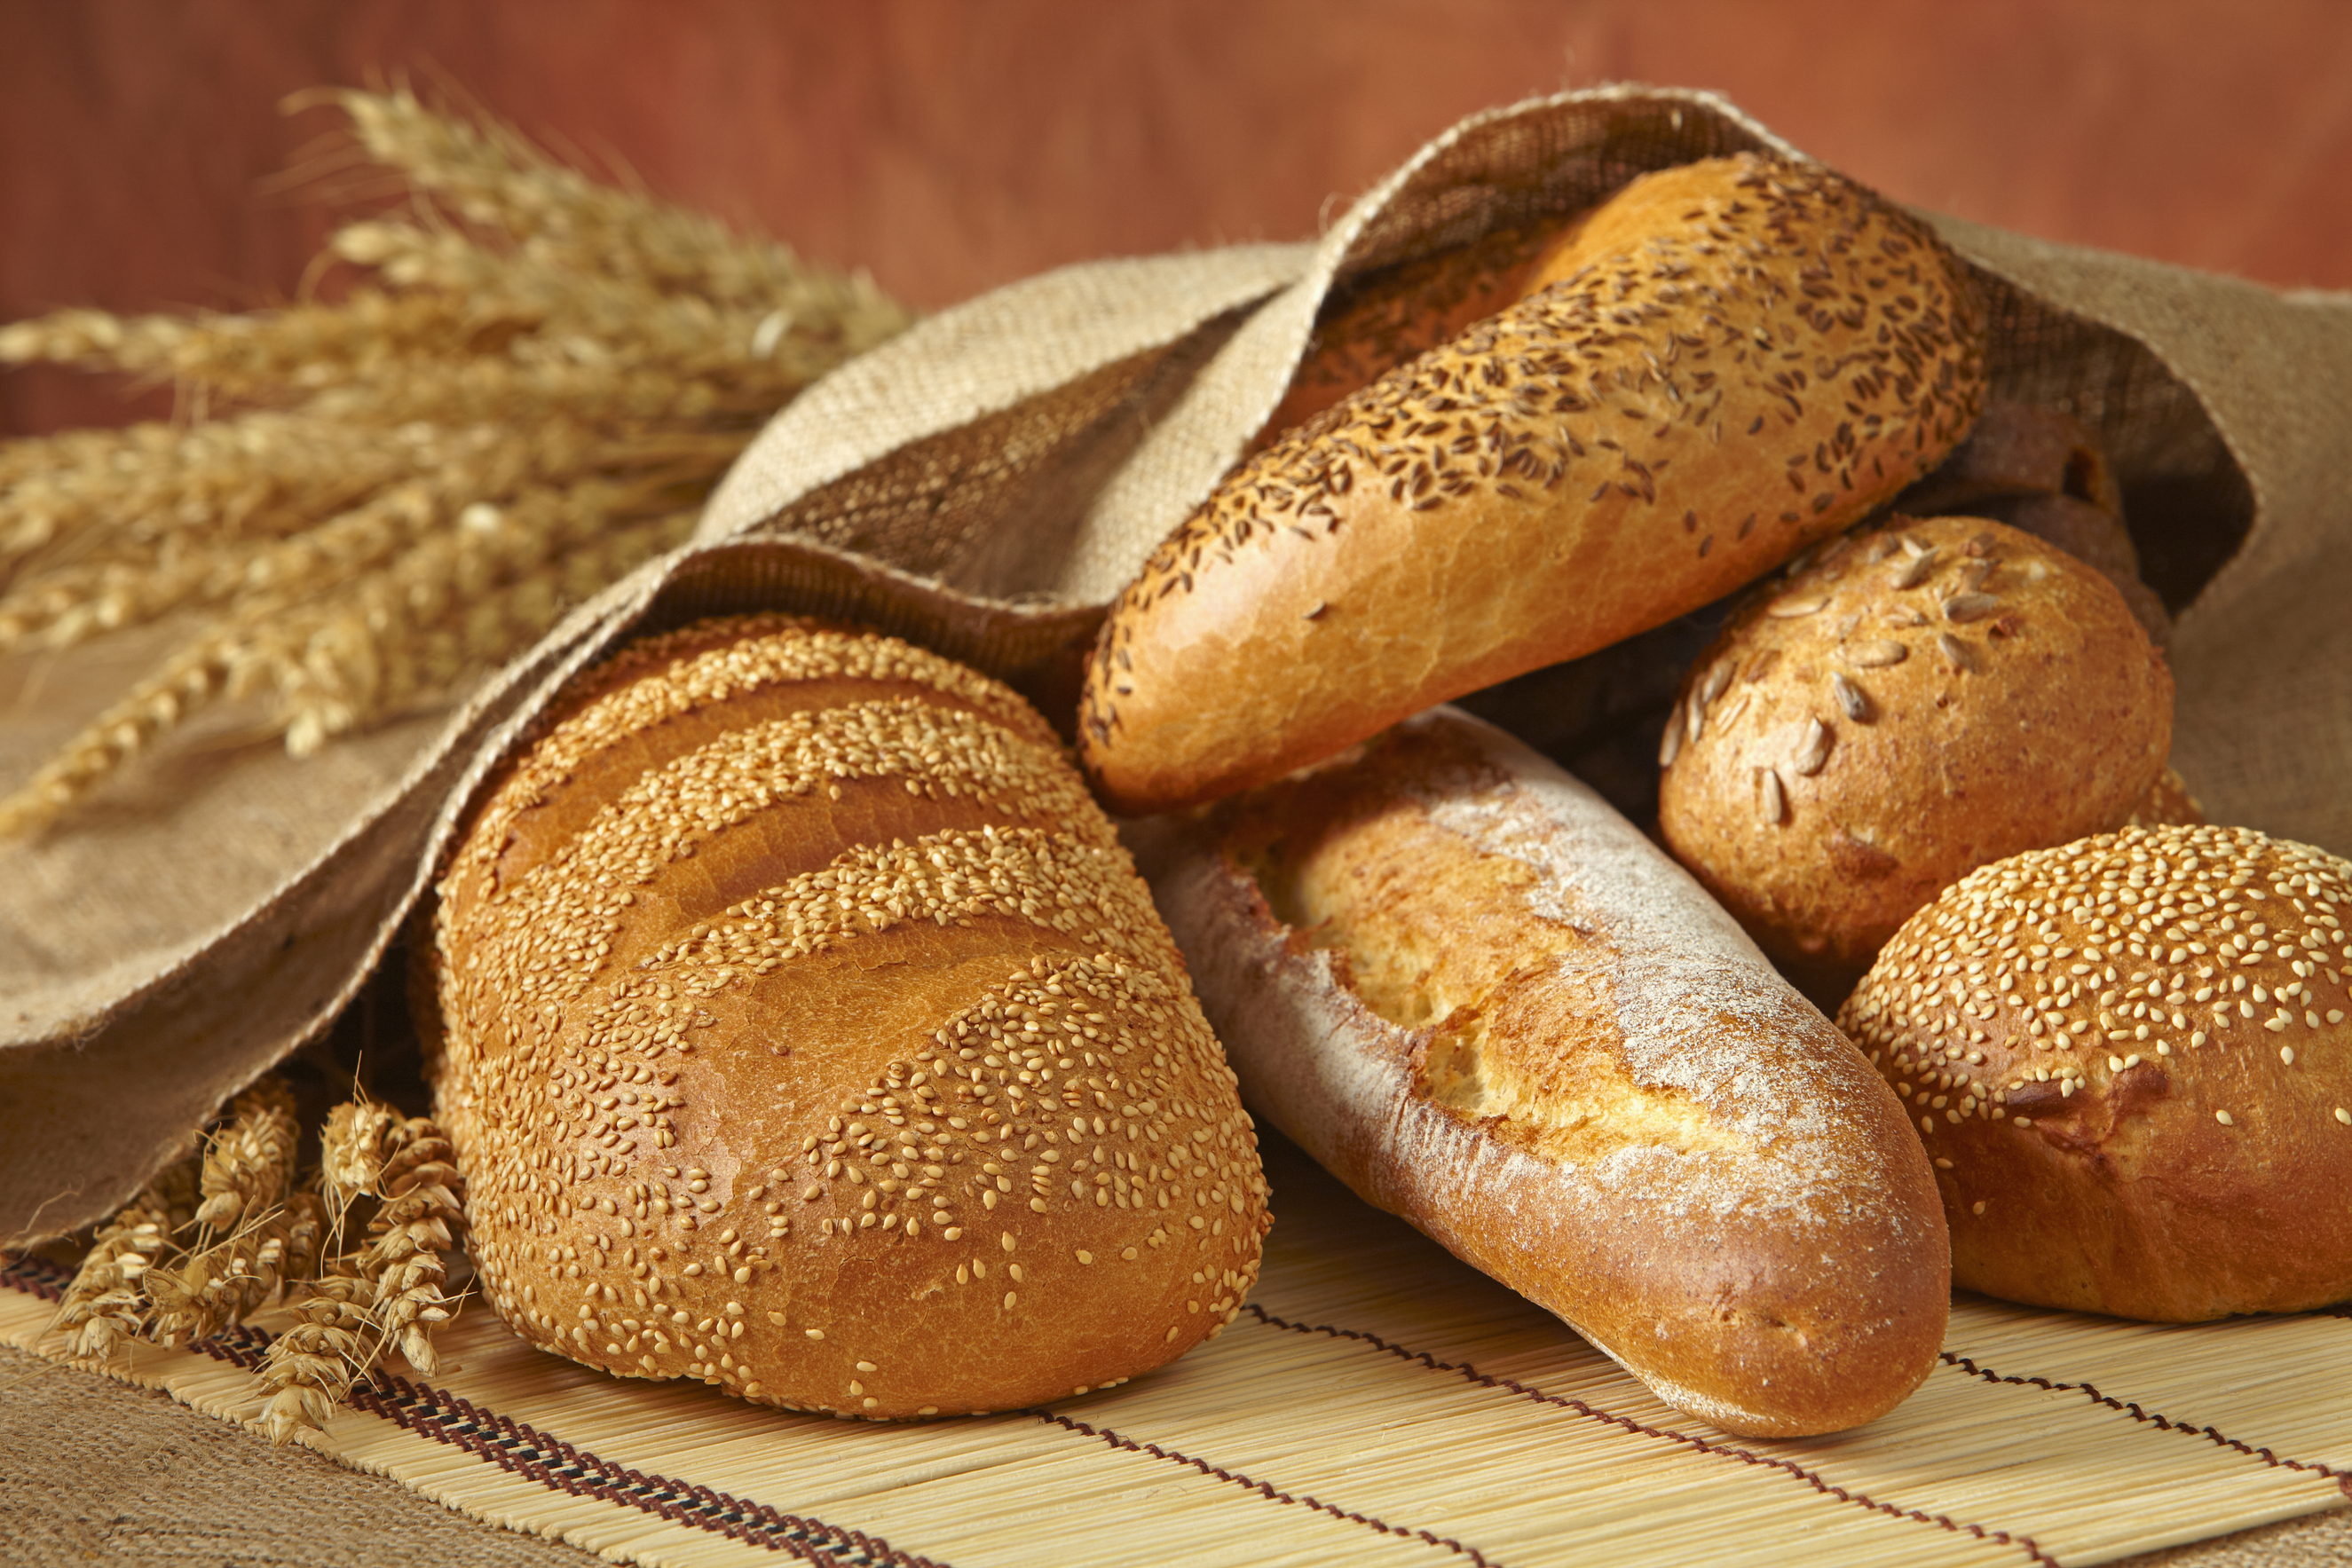 There are over 300 different kinds of bread found in Germany.